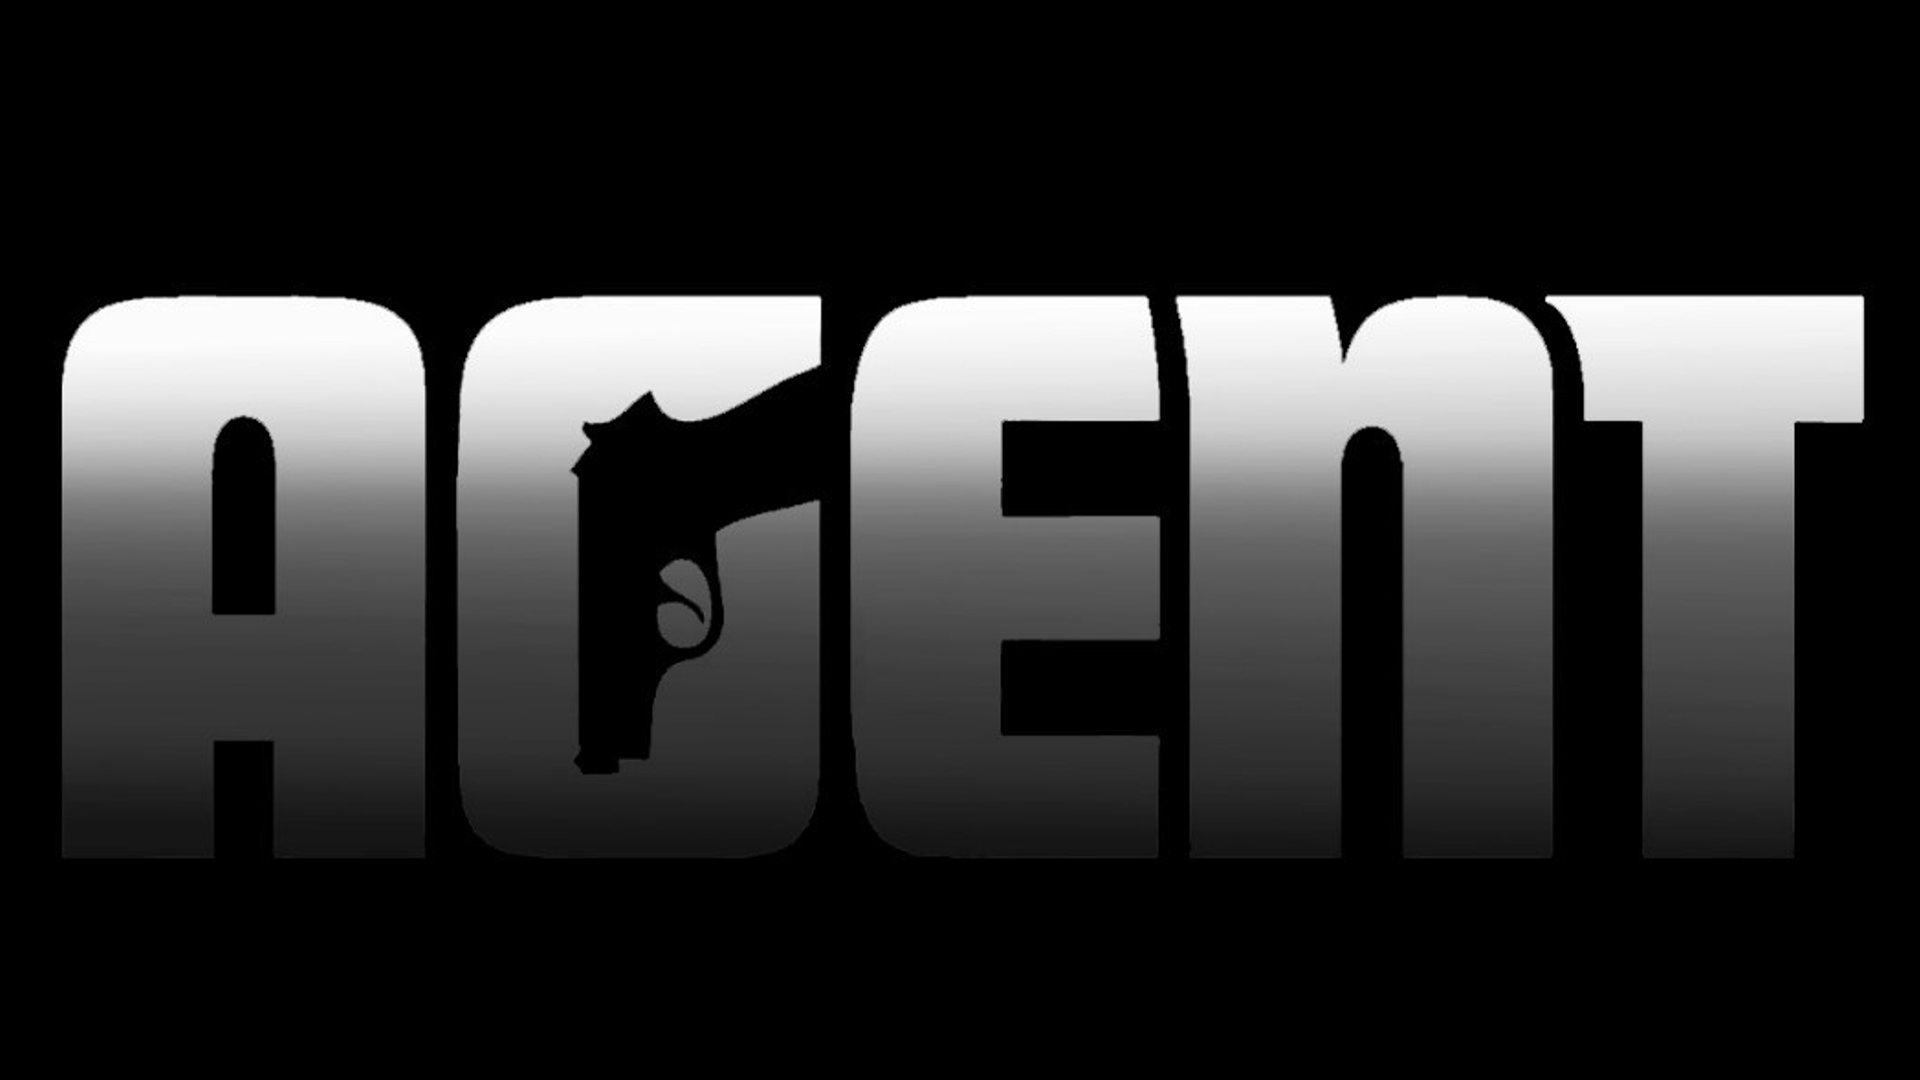 """Agent """"srcset ="""" https://i0.wp.com/psxextreme.com/wp-content/uploads/2018/11/agent.png?w=1920&ssl=1 1920w, https: //i0.wp .com / psxextreme.com / wp-content / uploads / 2018/11 / agent.png? resize = 300% 2C169 & ssl = 1 300w, https://i0.wp.com/psxextreme.com/wp-content/uploads/ 2018/11 / agent.png? Resize = 768% 2C432 & ssl = 1 768w, https://i0.wp.com/psxextreme.com/wp-content/uploads/2018/11/agent.png?resize=1024%2C576&ssl = 1 1024w, https: //i0.wp.com/psxextreme.com/wp-content/uploads/201 <div class=""""e3lan e3lan-in-post1""""> </div> 8/11/agent.png?resize=250%2C141&ssl=1 250w, https://i0.wp.com /psxextreme.com/wp -content / uploads / 2018/11 / agent.png? resize = 600% 2C338 & ssl = 1 600w, https://i0.wp.com/psxextreme.com/wp-content/uploads/2018/11/affiliate.png? W = 1100 & ssl = 1 1100w, https://i0.wp.com/psxextreme.com/wp-content/uploads/2018/11/agent.png?w=1650&ssl=1 1650w """"sizes ="""" (max width: 1920px) 100vw, 1920px """"data-attachment id ="""" 31961 """"data-permalink ="""" https://psxextreme.com/news/take-two-interactive-abandons-agent/attachment/agent/ """"data-orig-file = """"https://i0.wp.com/psxext reme.com/wp-content/uploads/2018/11/agent.png?fit=1920%2C1080&ssl=1"""" data-orig-size = """"1920,1080"""" data-image-meta = """"{"""" aperture """":"""" 0 """","""" credit """""""" """","""" camera """":"""" """","""" caption """":"""" """","""" created_timestamp """":"""" 0 """","""" copyright """""""" """","""" focal_length """"0"""", """"iso"""": """"0"""", """"shutter_speed"""": """"0"""", """"title"""": """""""", """"orientation"""": """"0""""} """"data image -title = """"Agent"""" data -description = """""""" data-medium-file = """"https://i0.wp.com/psxextreme.com/wp-content/uploads/2018/11/agent.png?fit=300 % 2C169 & ssl = 1 """"data-large file ="""" https://i0.wp.com/psxextreme.com/wp-content/uploads/2018/11/agent.png?fit=550%2C309&ssl=1 """"/> <section class="""